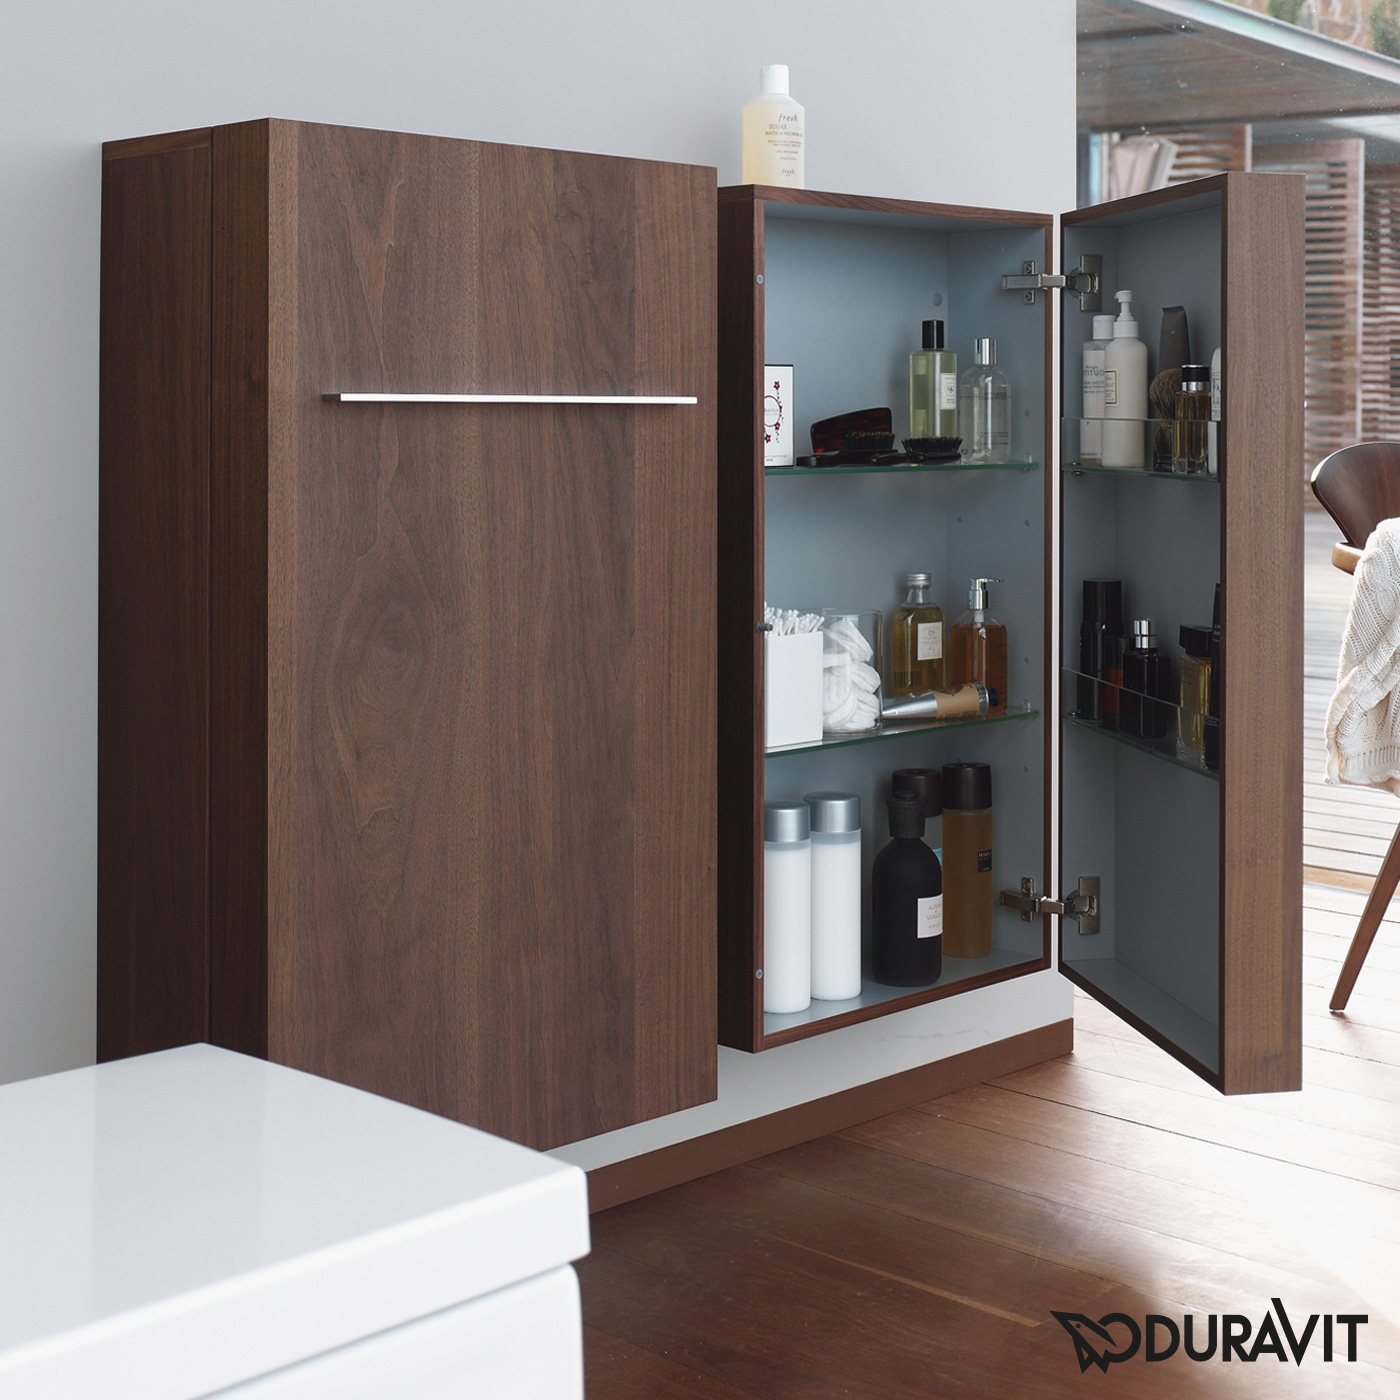 duravit fogo halbhochschrank amerikanischer nu baum. Black Bedroom Furniture Sets. Home Design Ideas